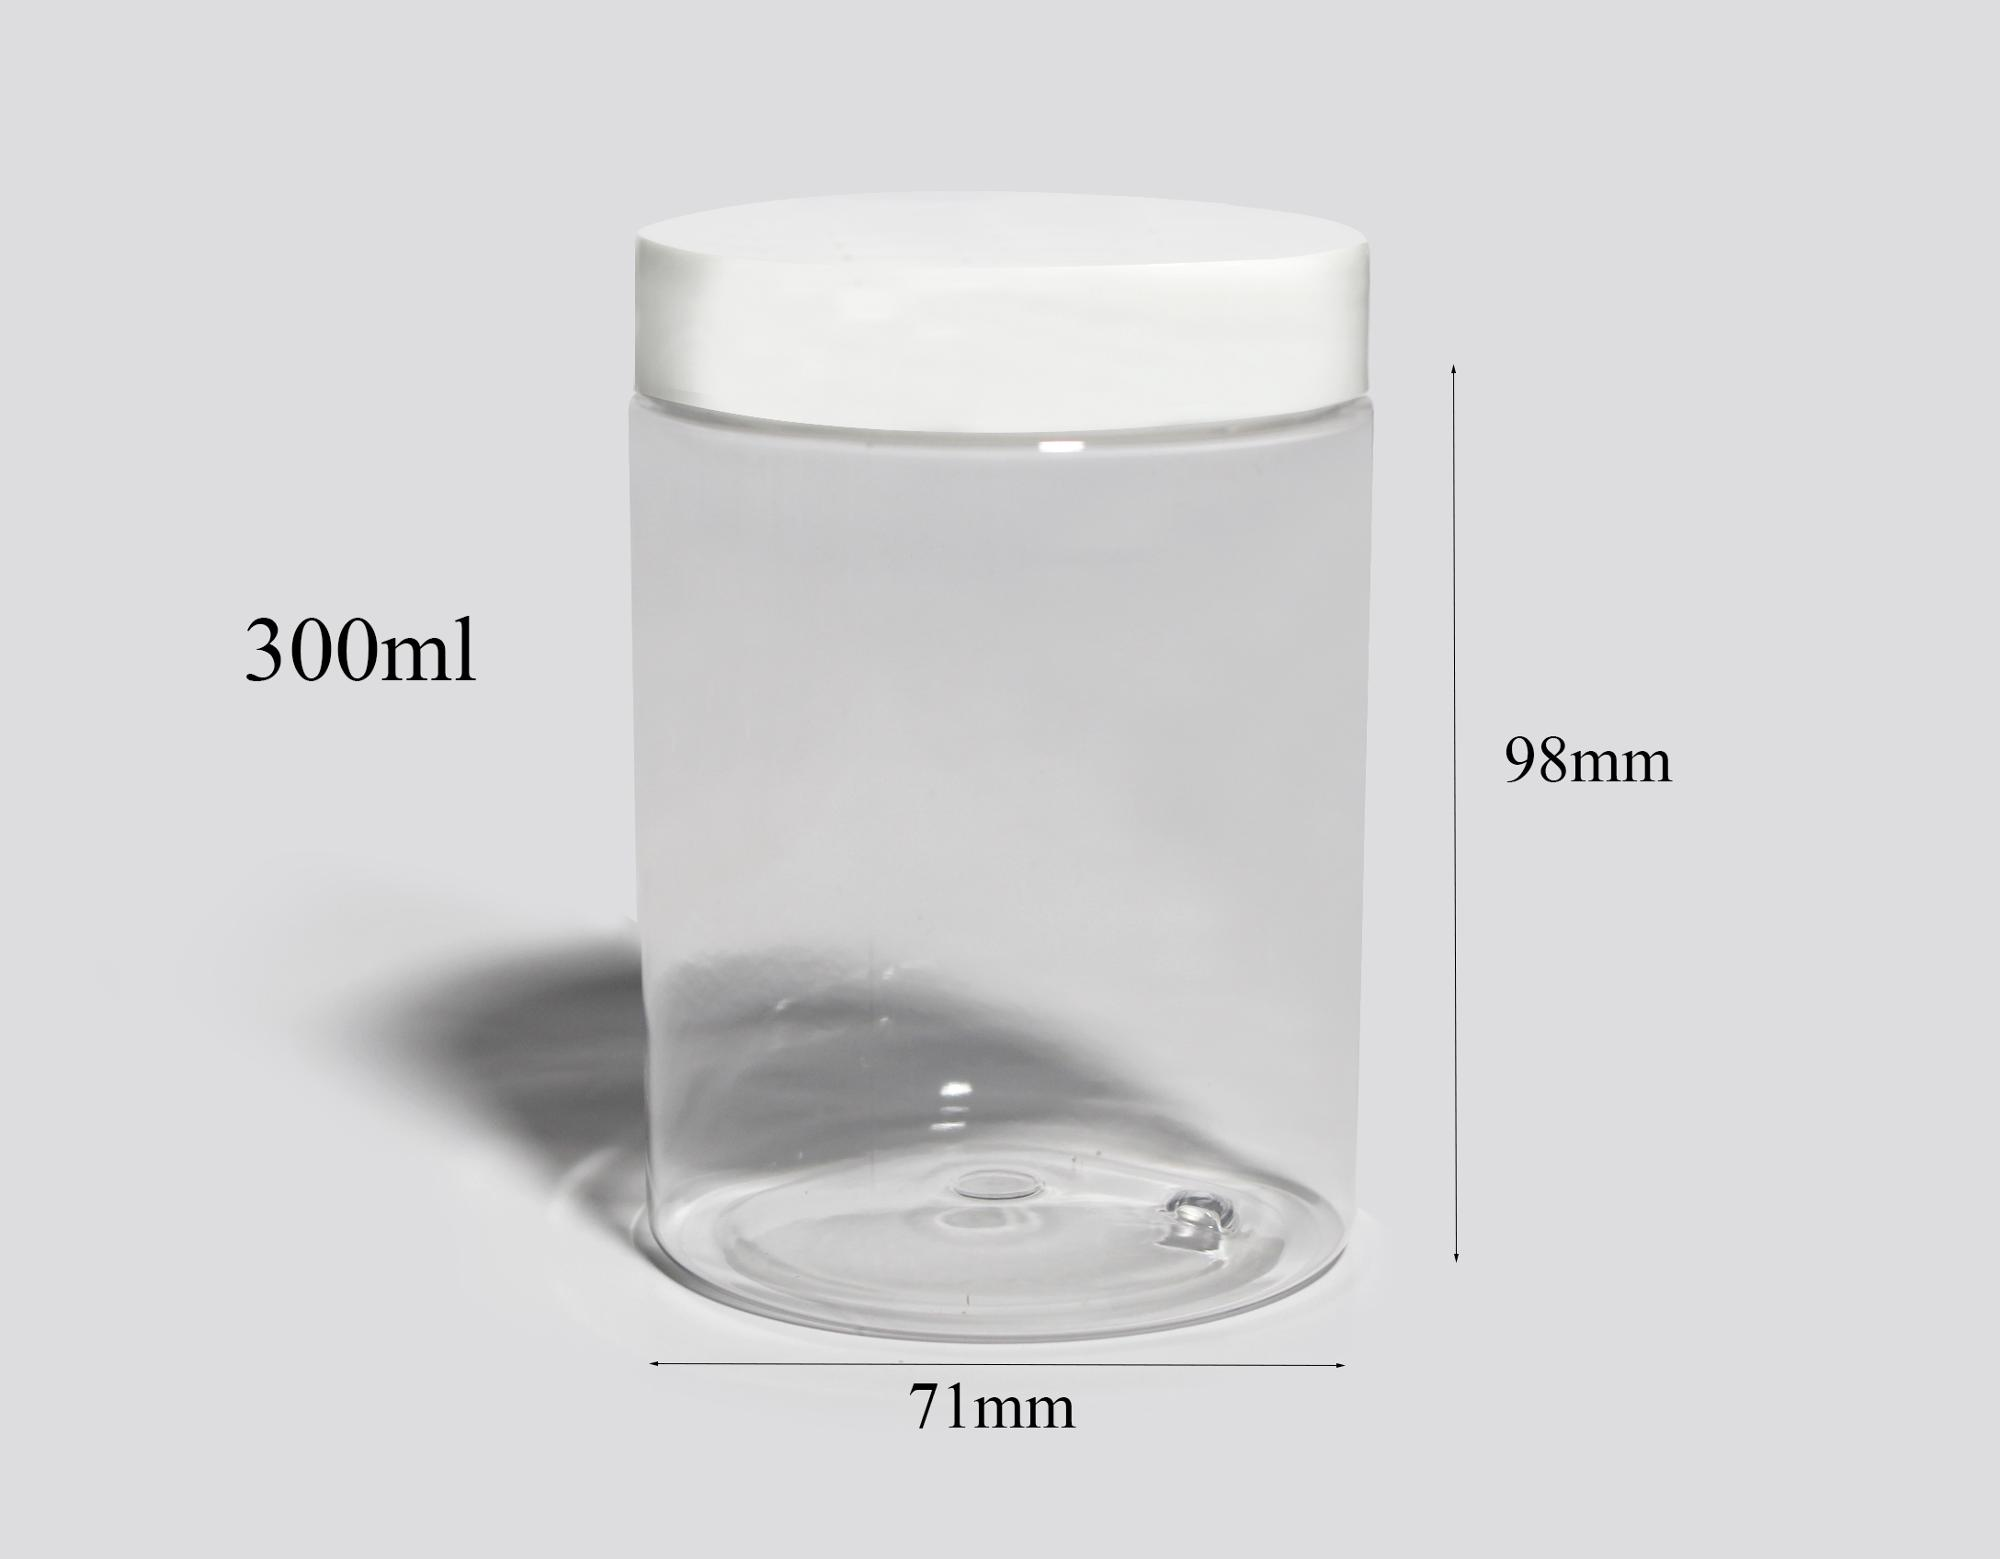 300ml 10oz Wide Mouth Food Jar Cream Cosmetic Bath Salt Plastic PET jar with Aluminum Plastic Lid Cap